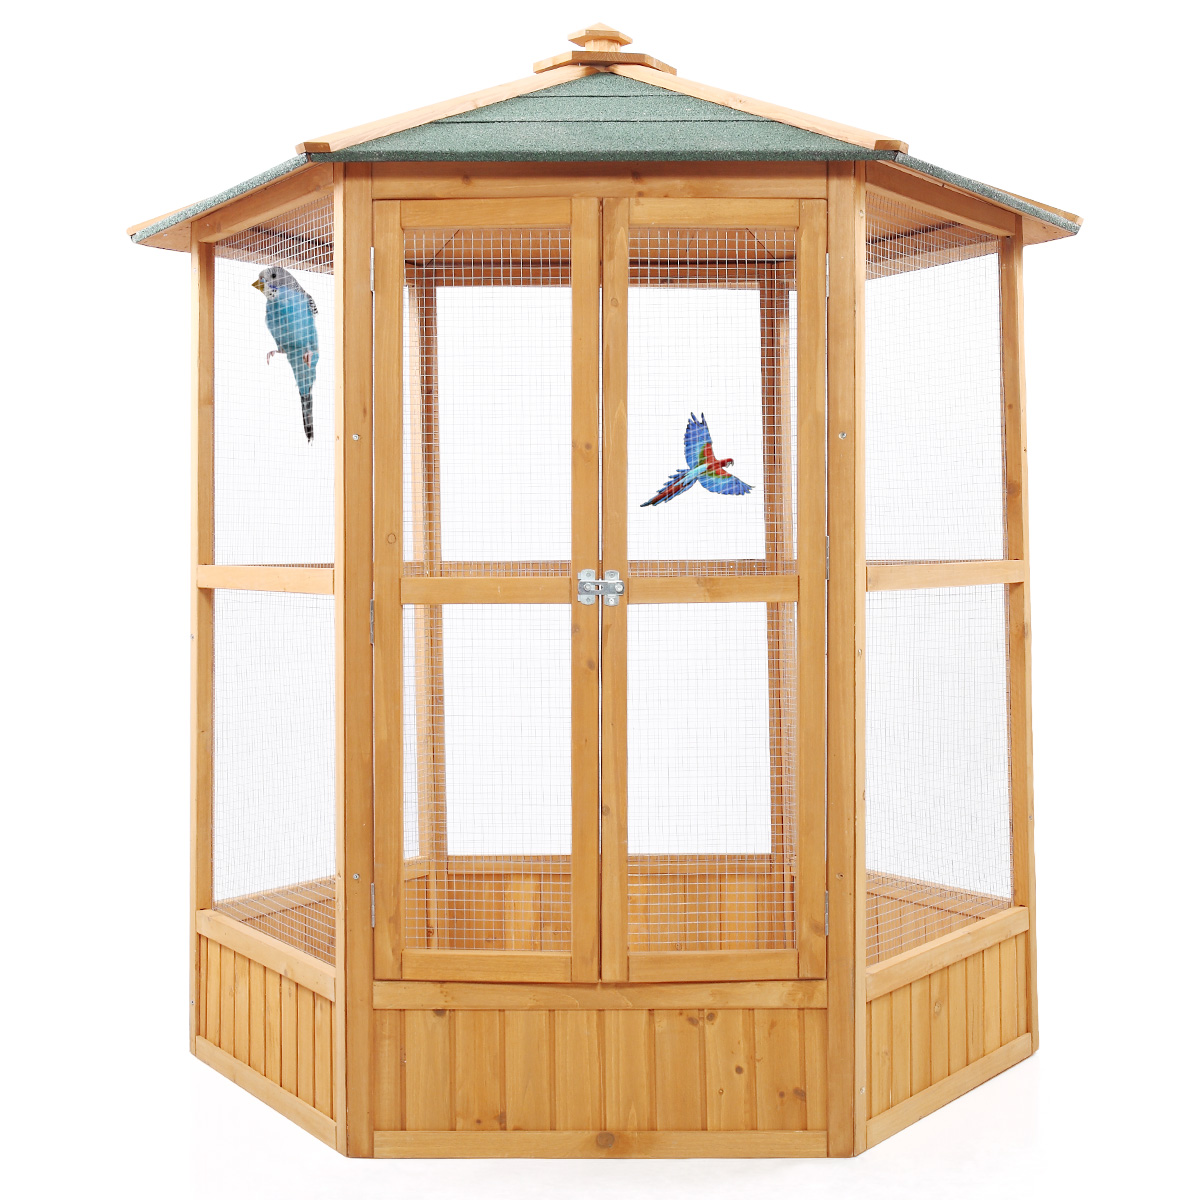 "64"" Hexagonal Wooden Aviary Bird Cage Hatch Room Pet Parrot Cock Cockatoo Finch House"